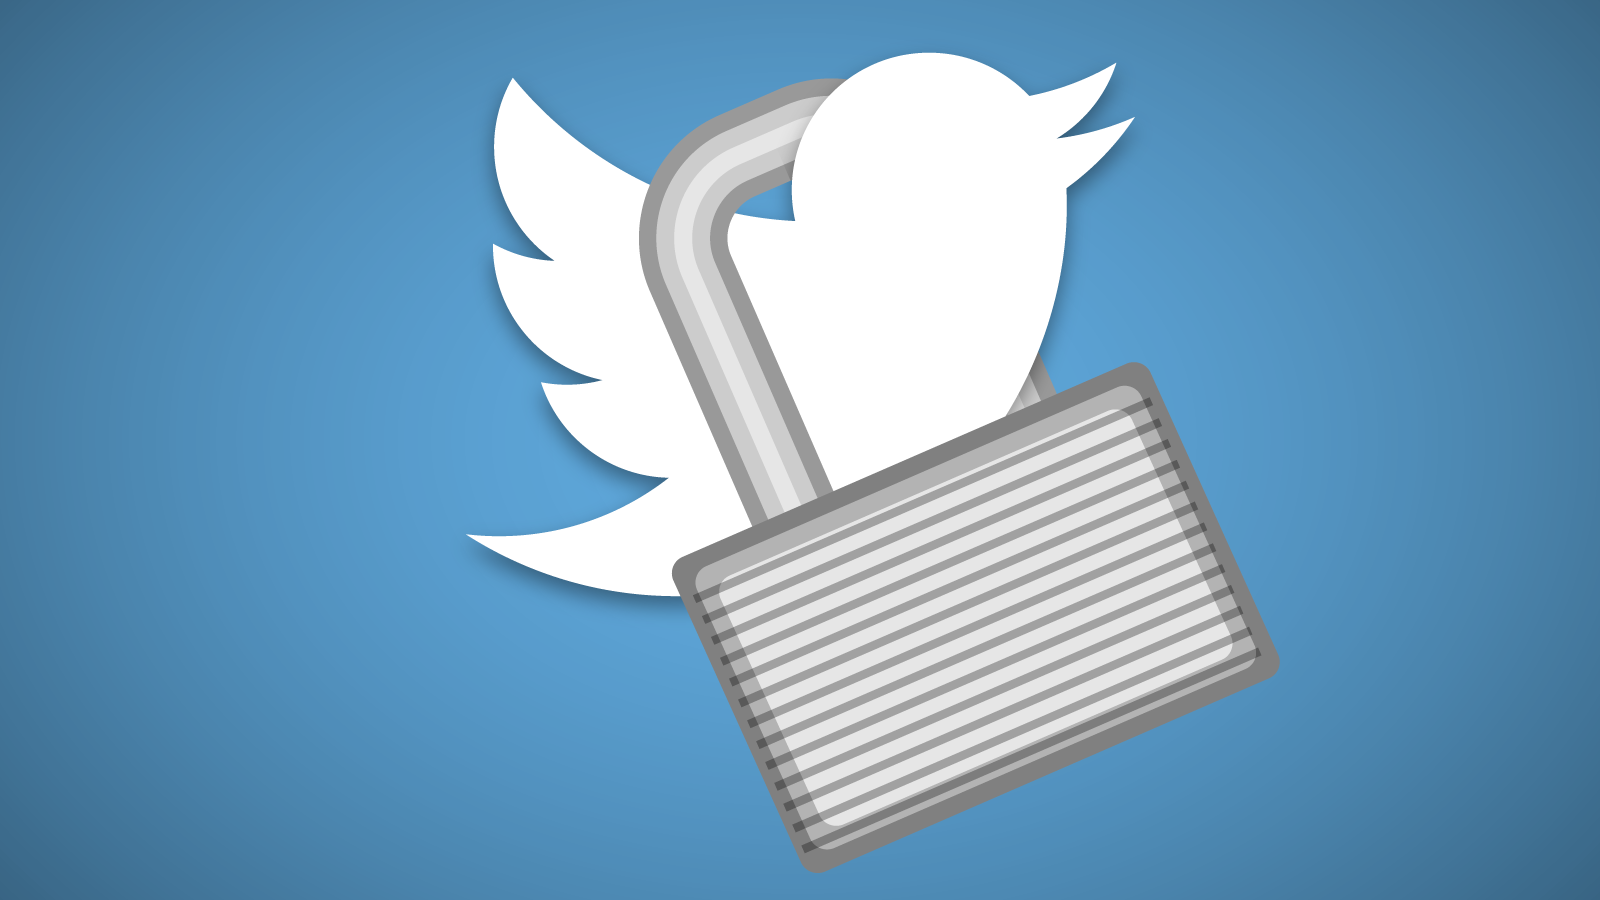 Twitter likely working on encrypted direct messaging service